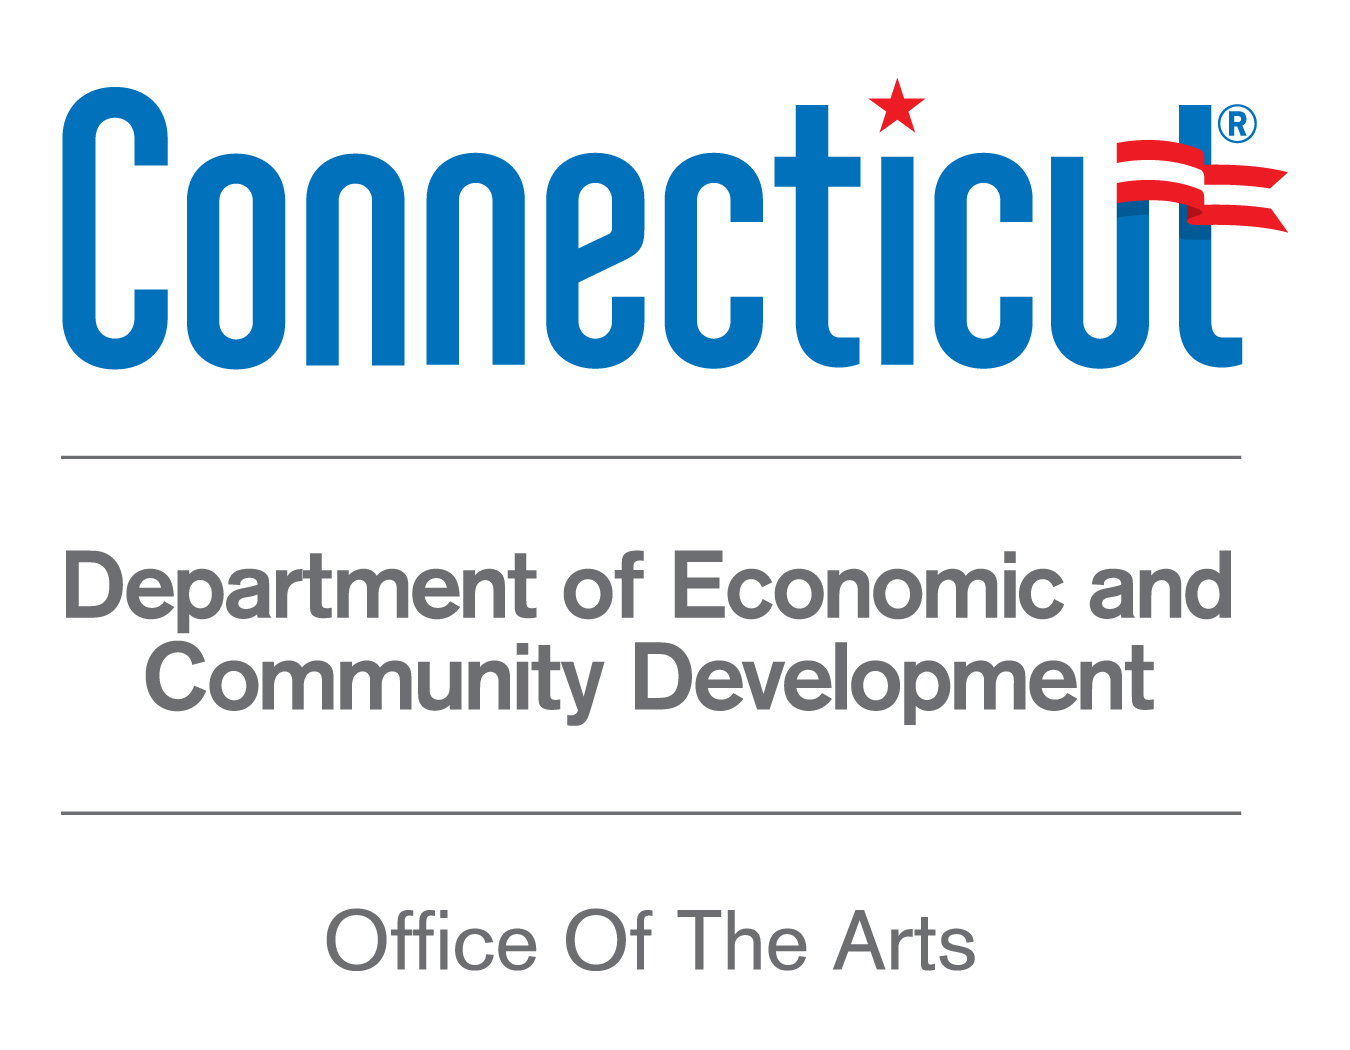 with support from the Connecticut Office of the Arts